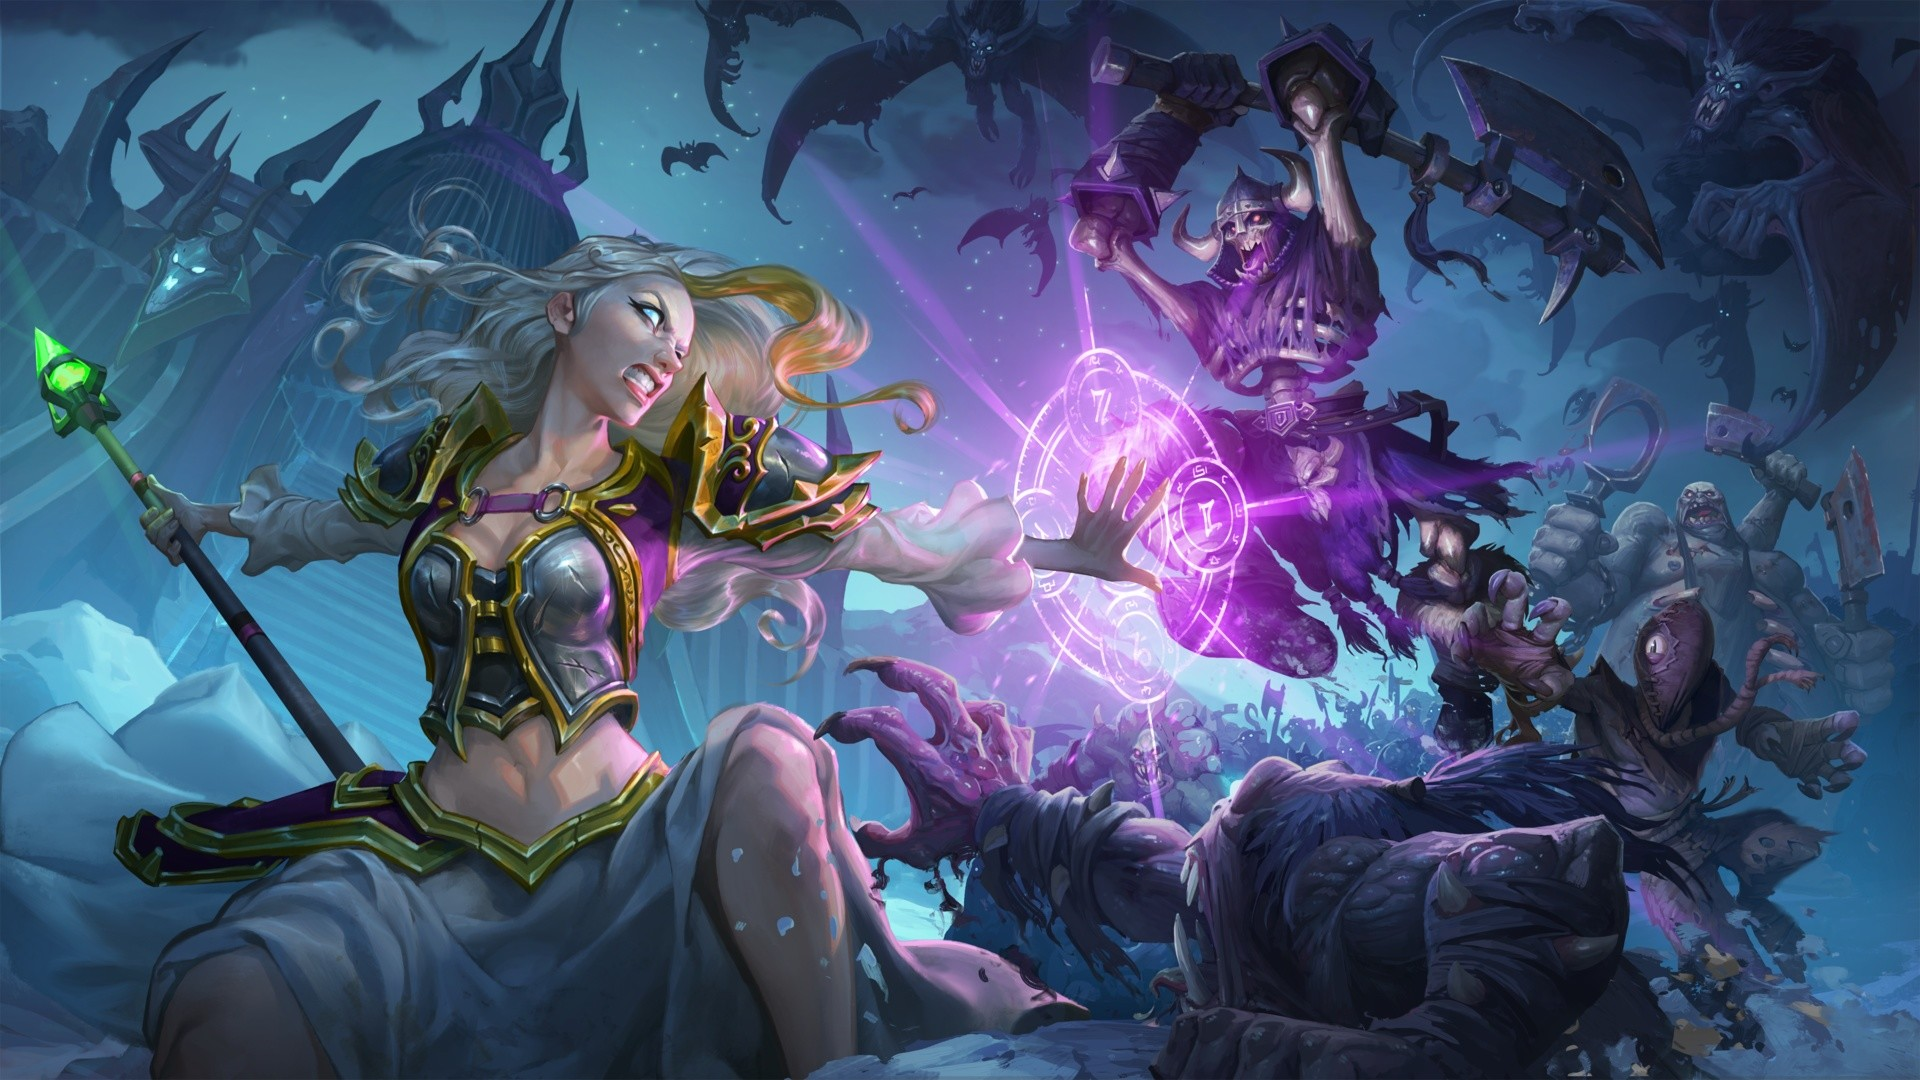 Res: 1920x1080, Jaina vs. undead. Wallpaper from Hearthstone: Knights of the Frozen Throne